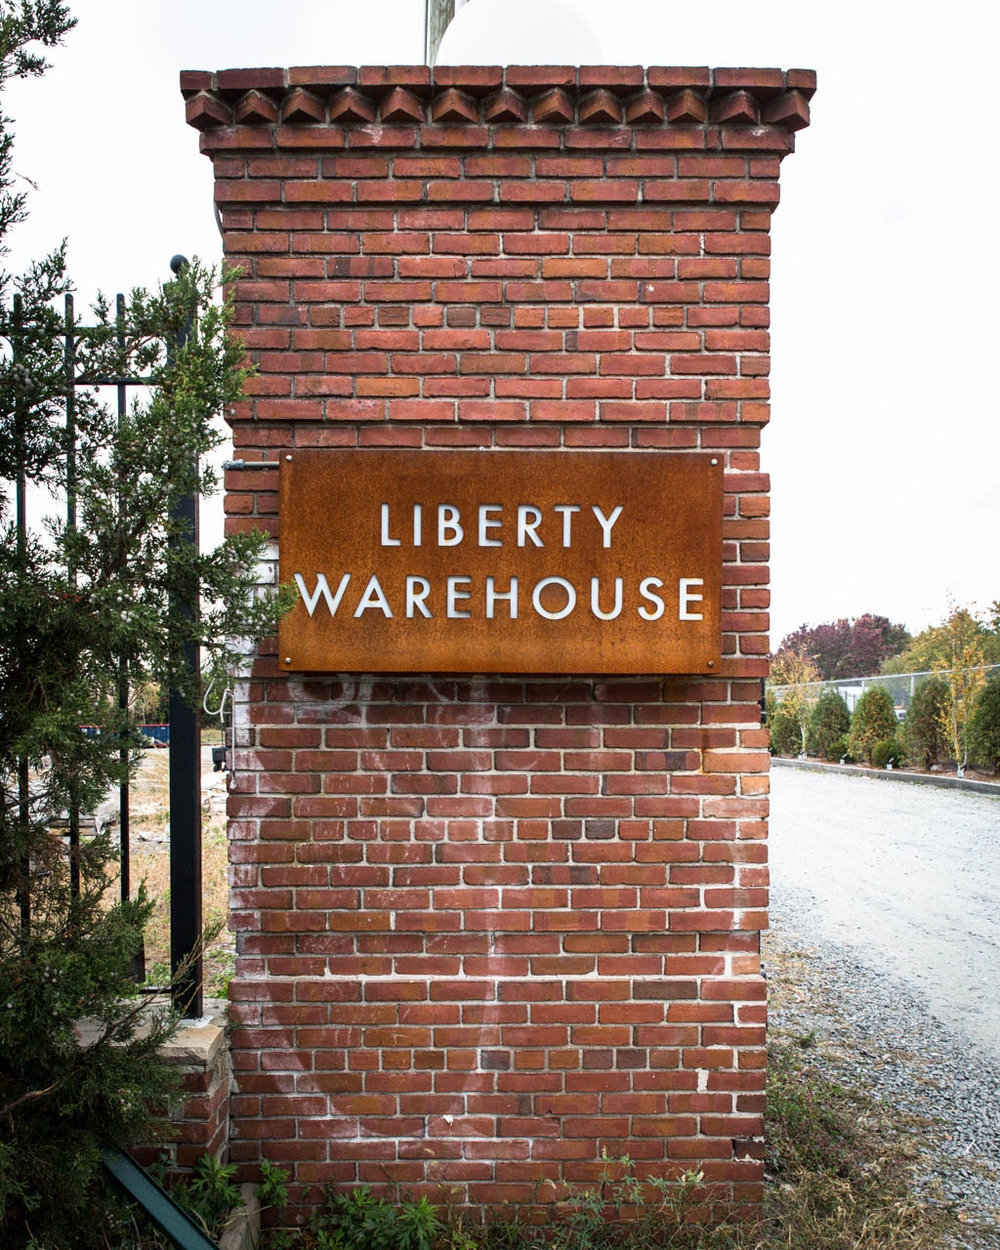 Pulley is housed in the historic Liberty Warehouse.